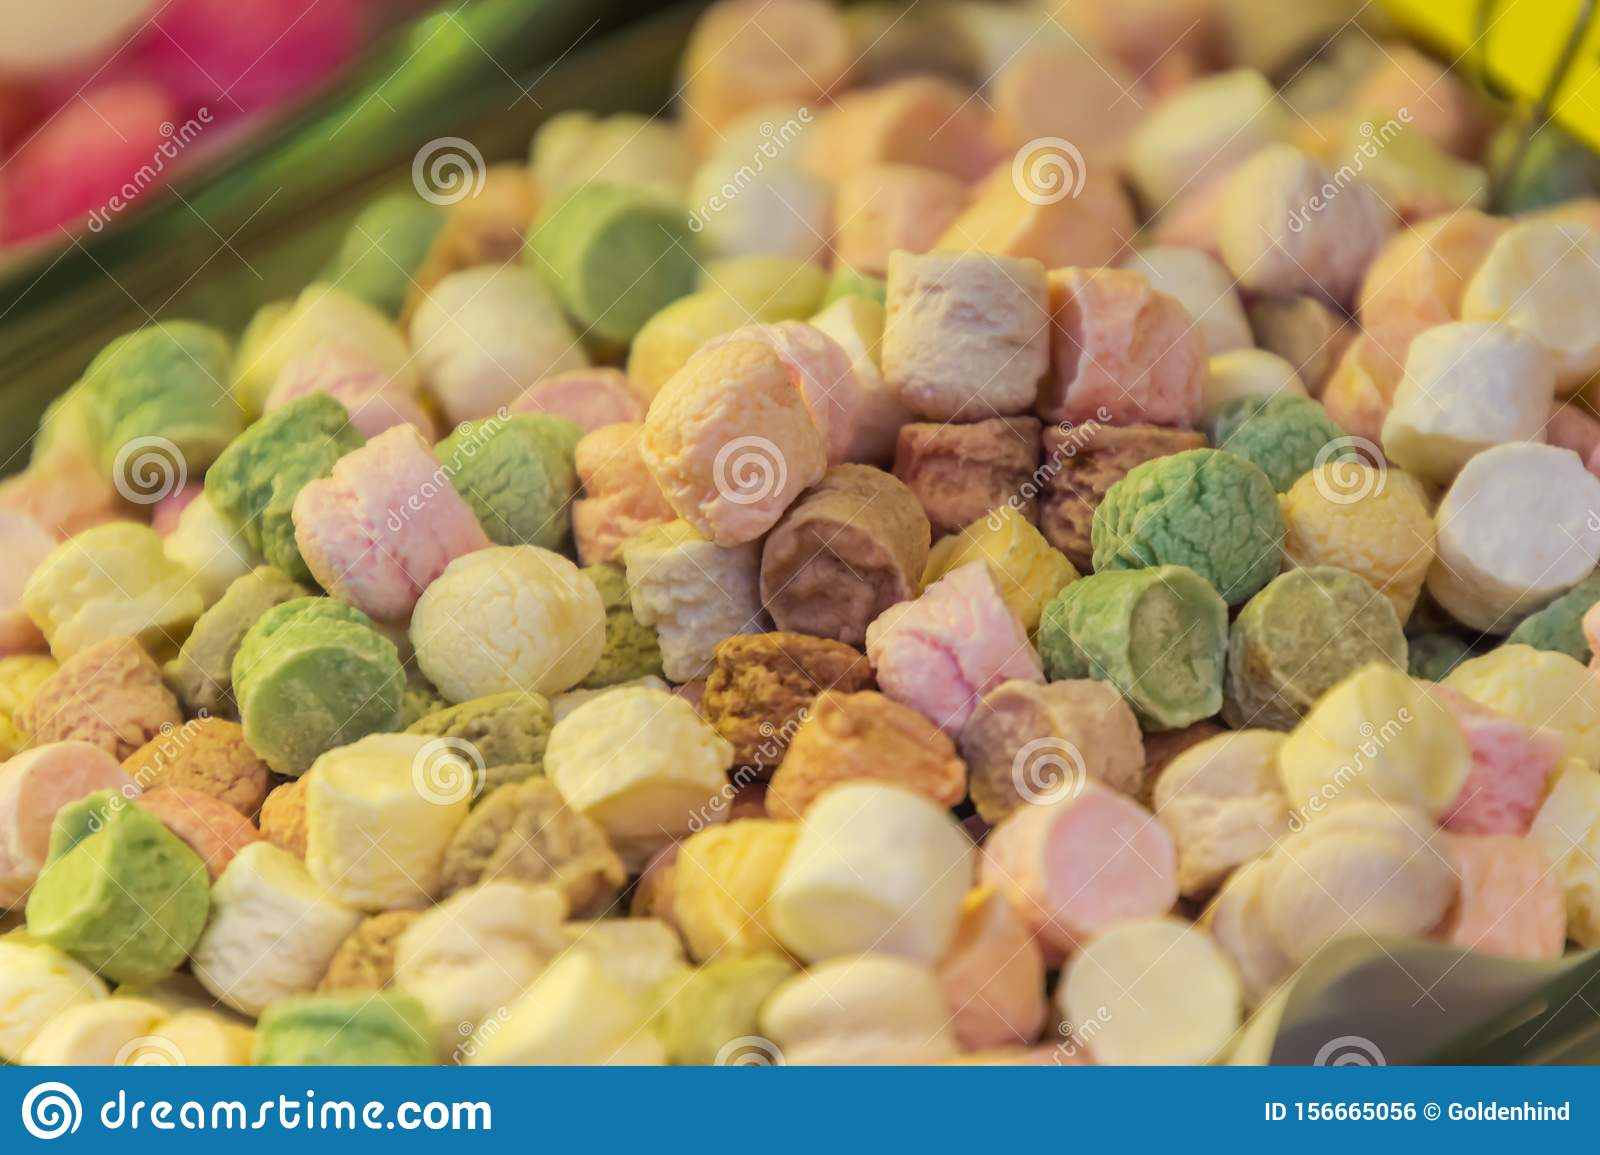 Different colorful round candies in the sweets shop for background